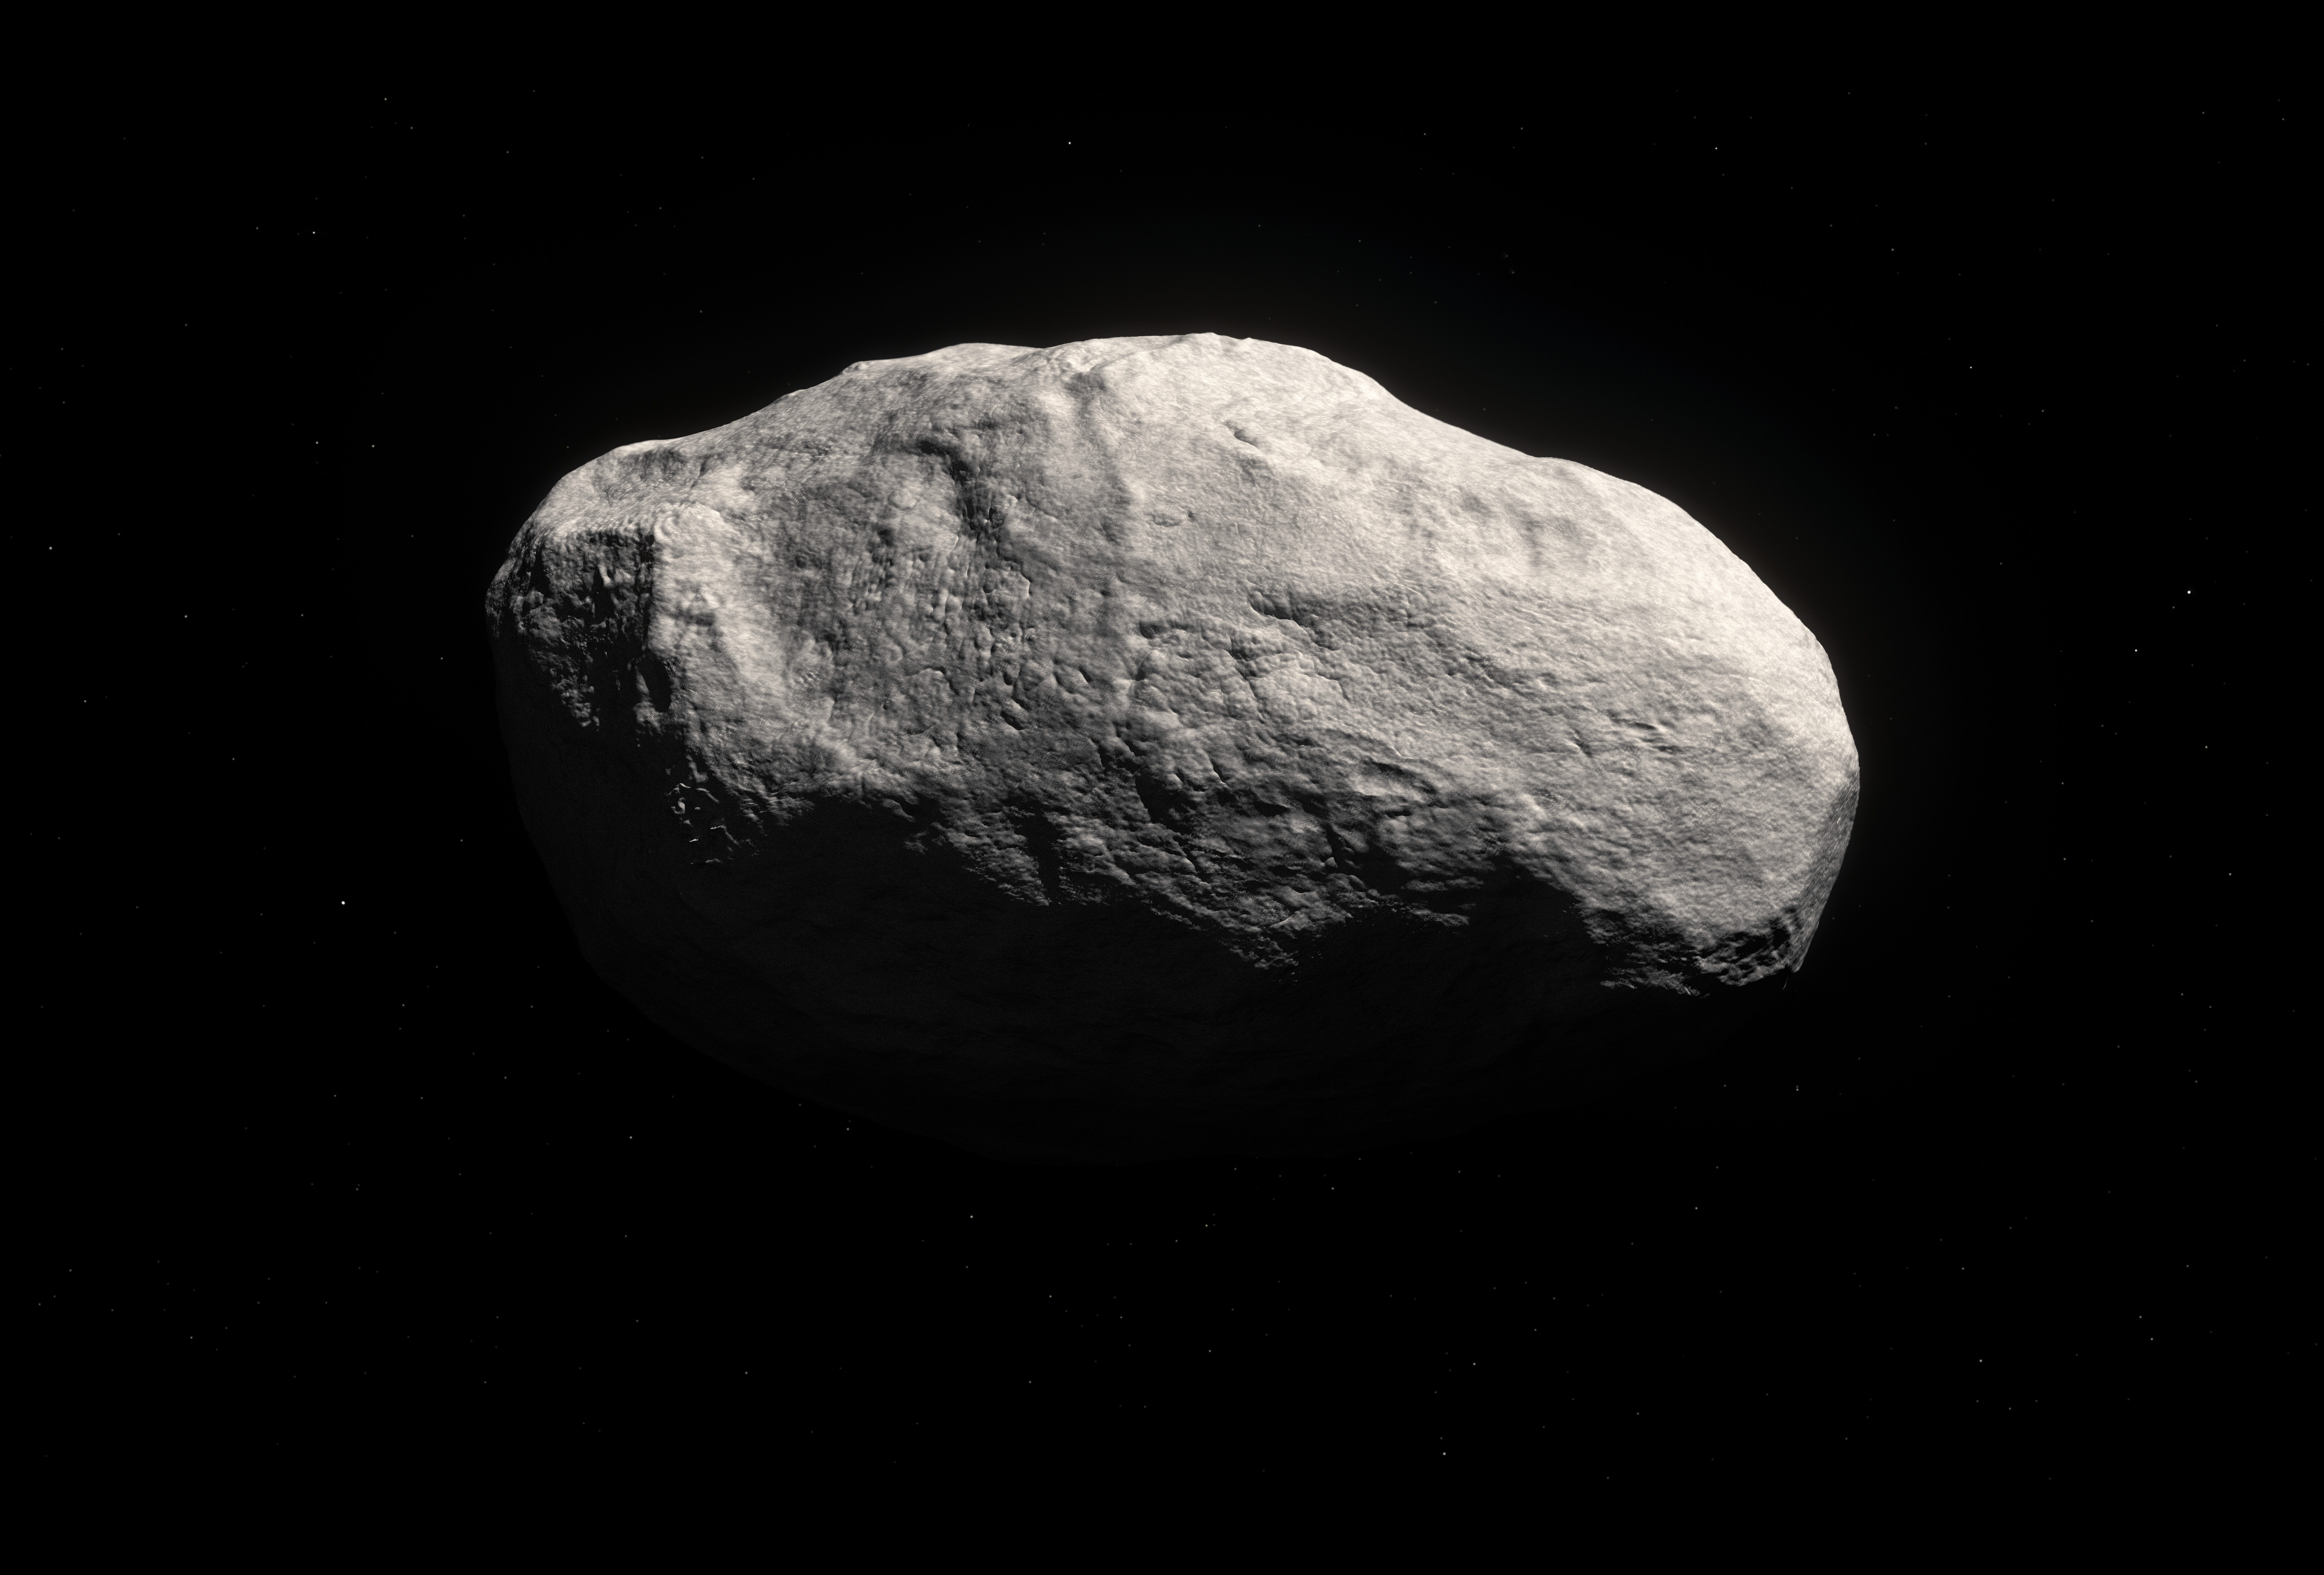 Realistic depiction of a large, tailless comet